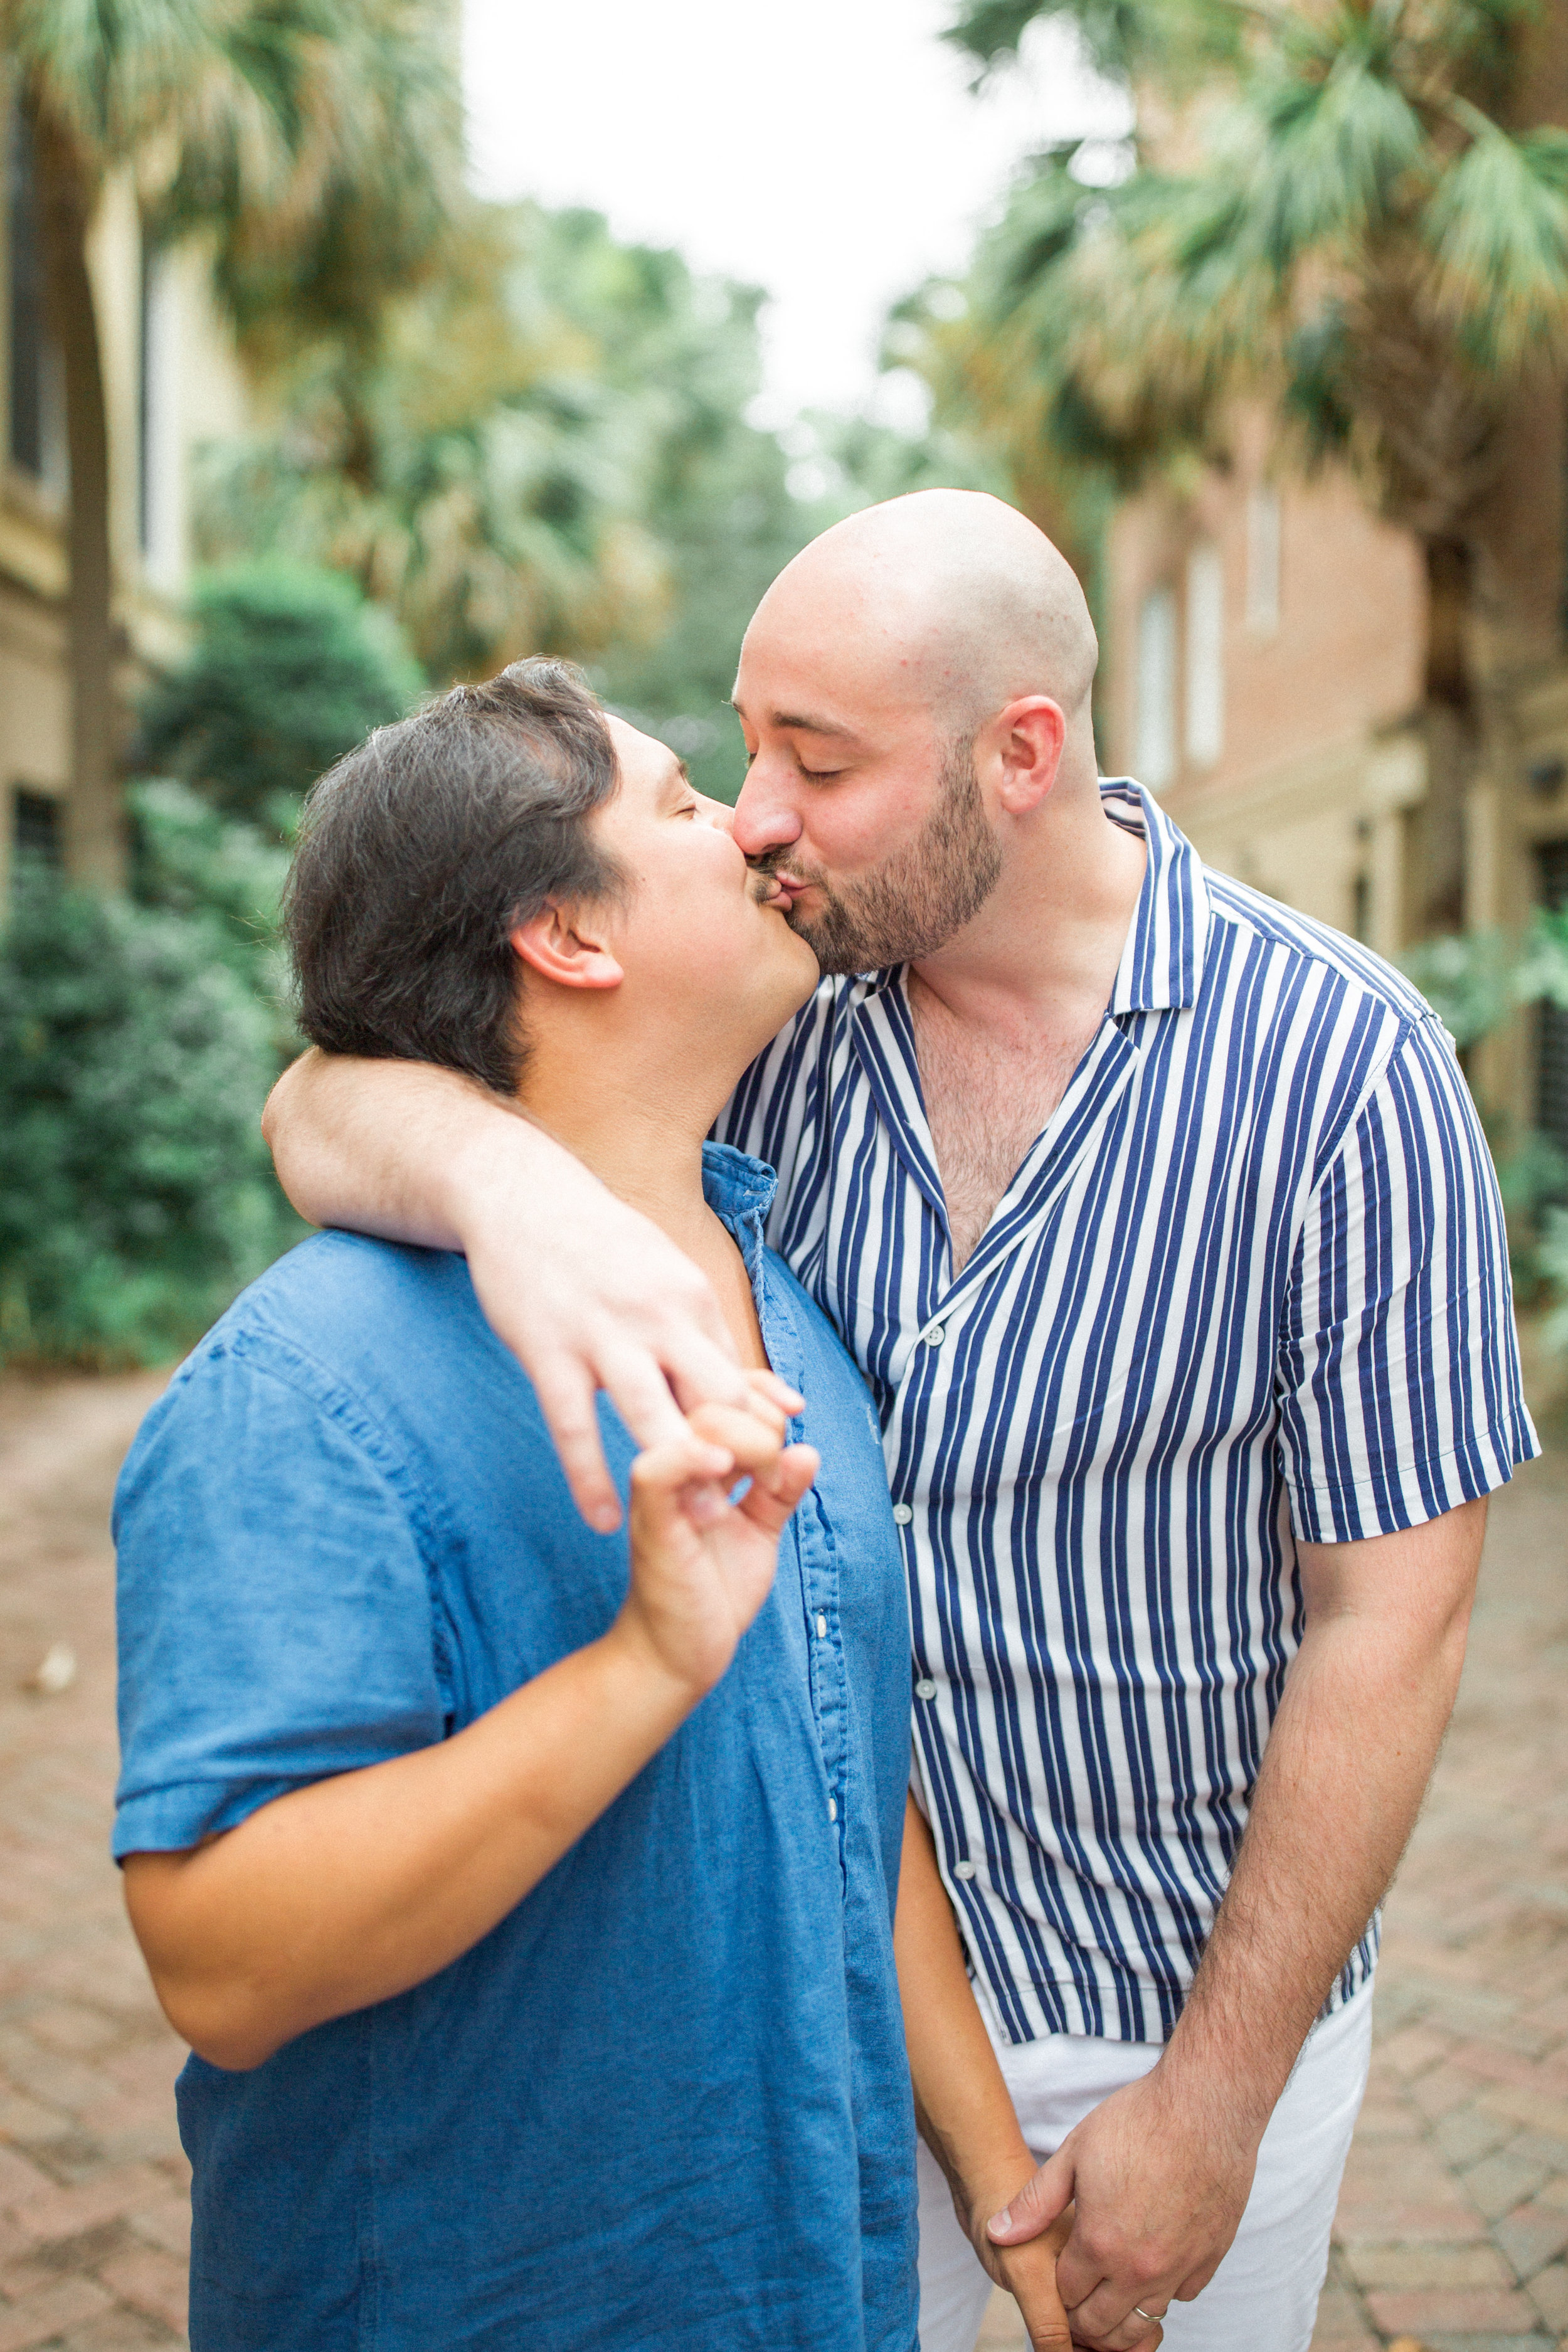 LGBTQ+ - We love Cameron because he supports the LGBTQ+ community. He created a safe space for us to celebrate the most special moments of our wedding bliss. That feeling is the most important. Thank you, Cameron, for giving us the luxury of that feeling.